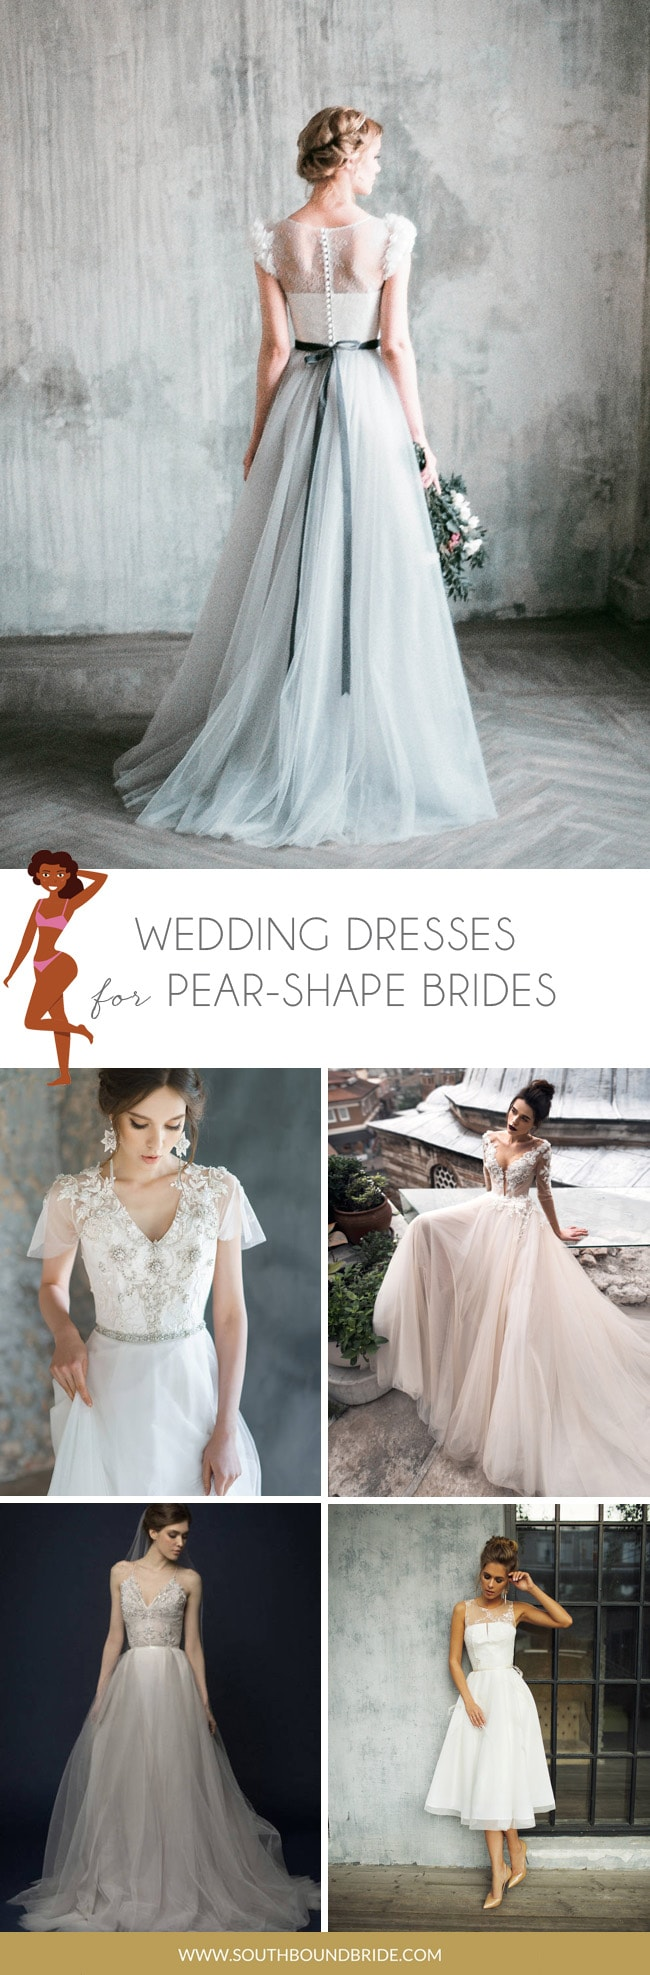 Wedding Gown for Pear Shaped Body | SouthBound Bride